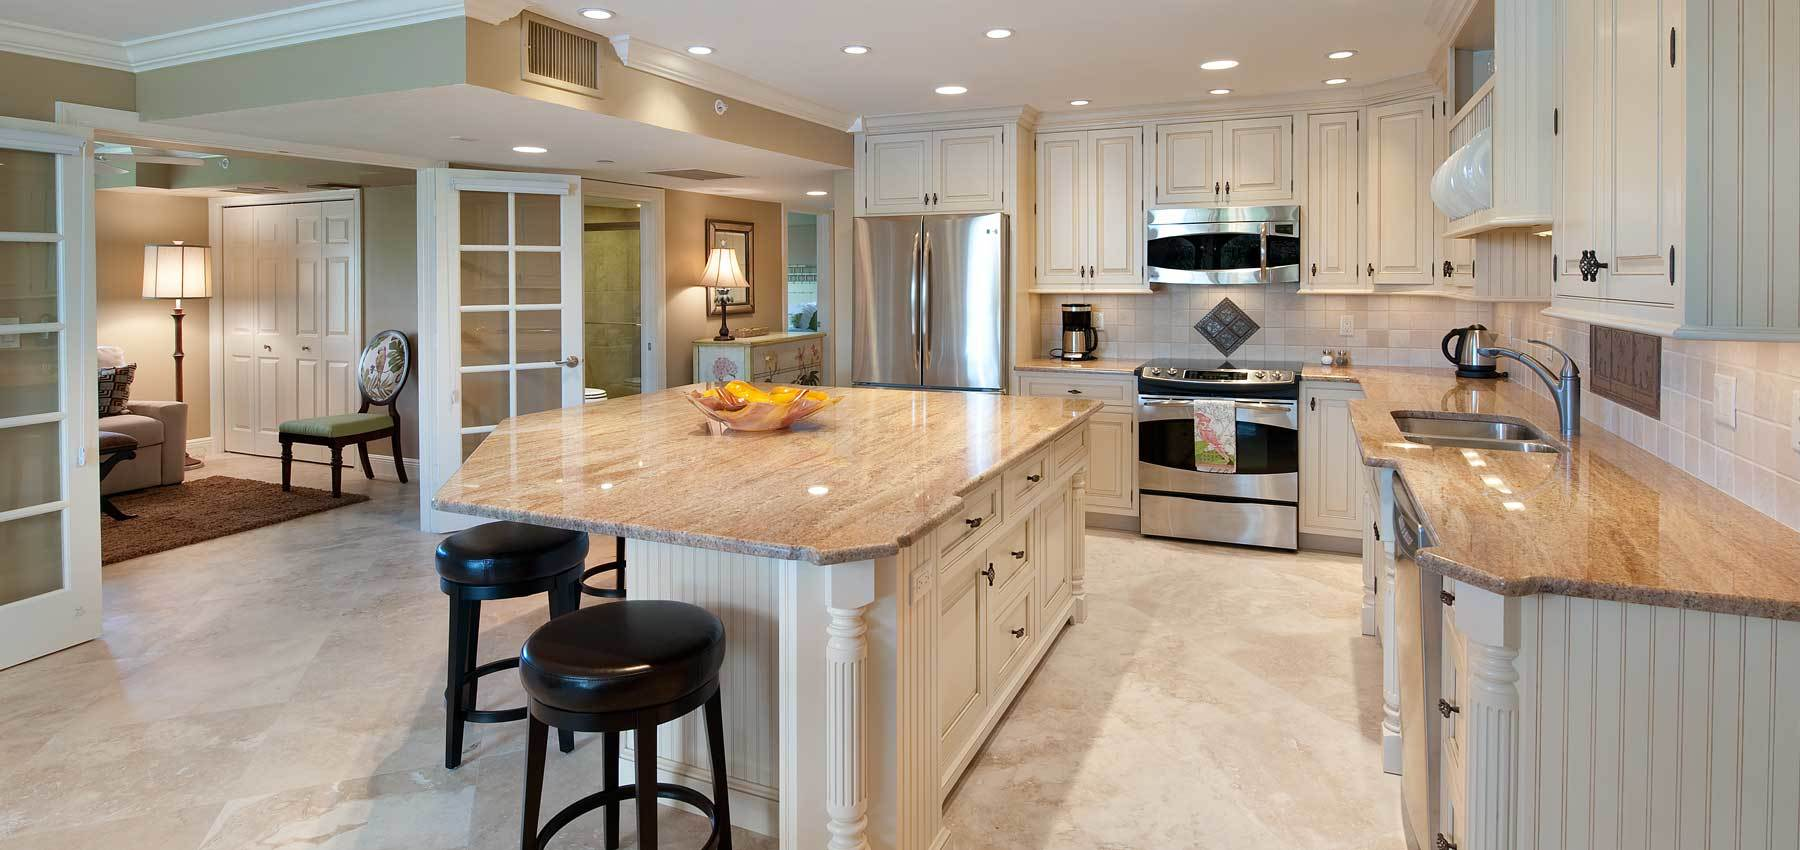 kitchen remodeling kgt remodeling rh kgtremodeling com  kitchen and bath remodeling naples fl